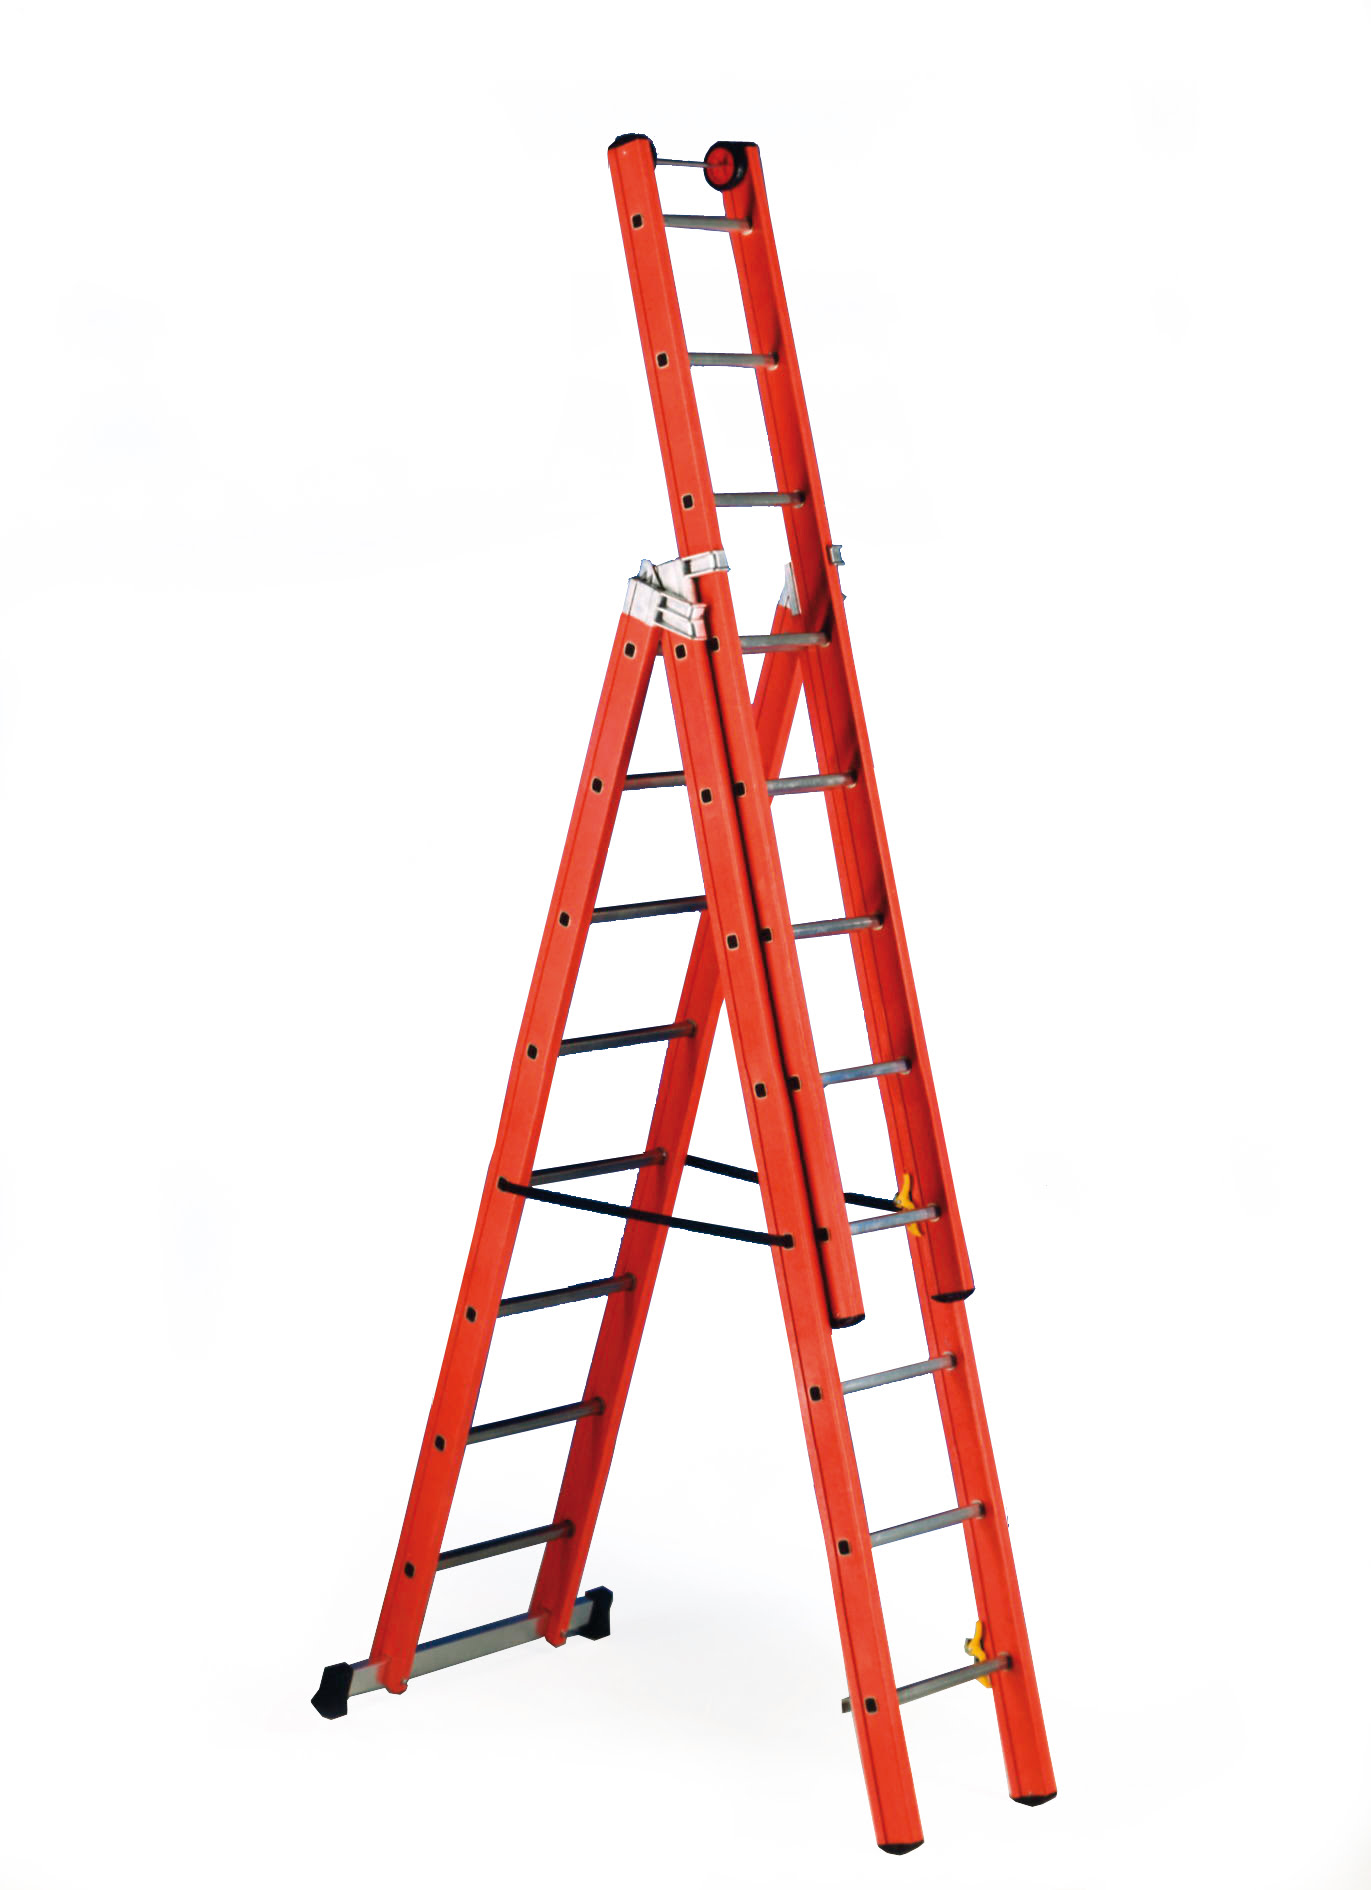 V3 Glass Fibre Ladder Insulated To 100 000 Volts Uk